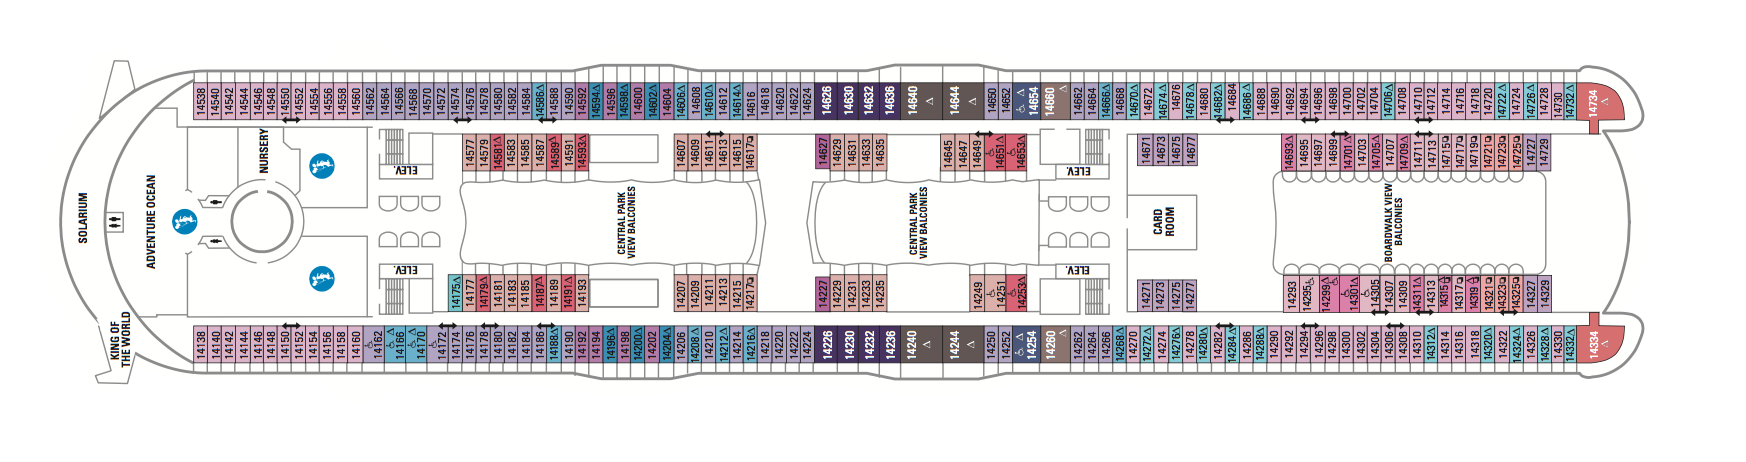 Royal Caribbean International Symphony of the Seas Deck Plans Deck 14.png